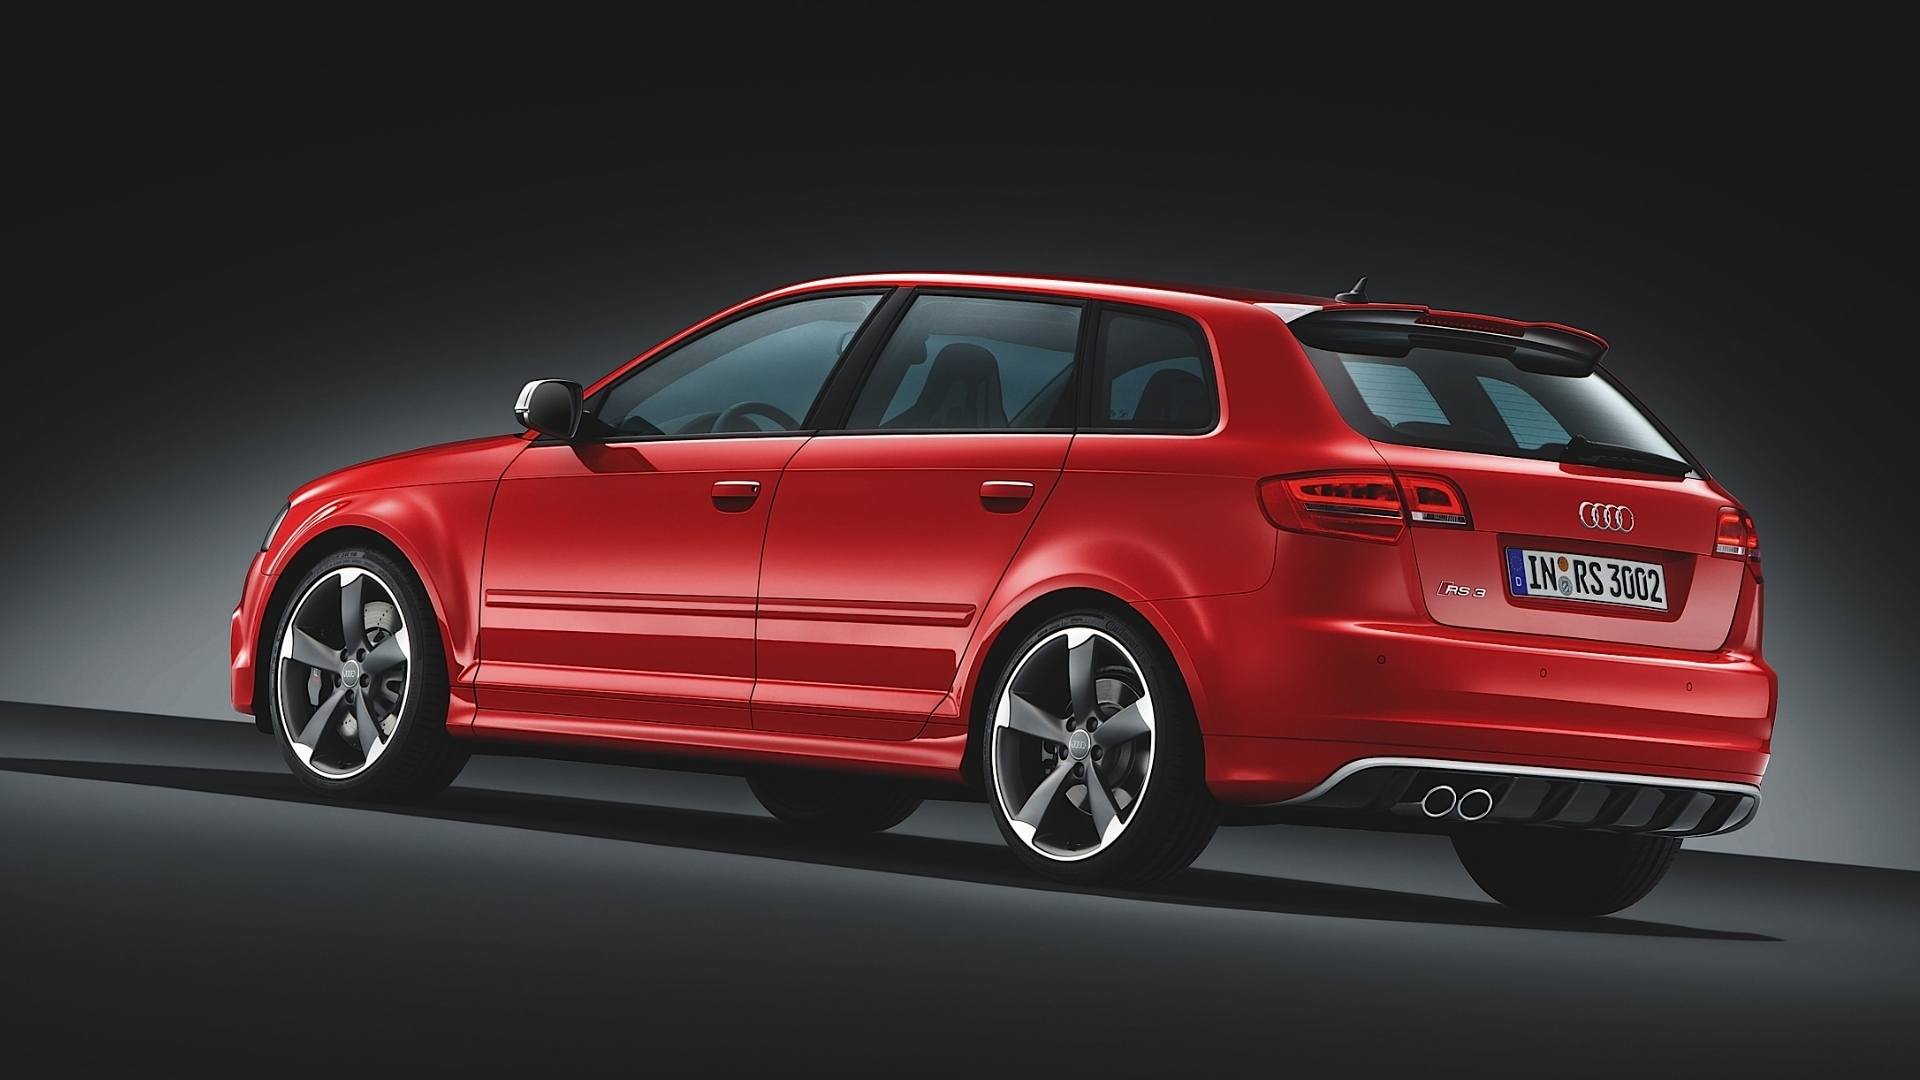 audi rs3 sportback (8pa) 2012 wallpaper #12